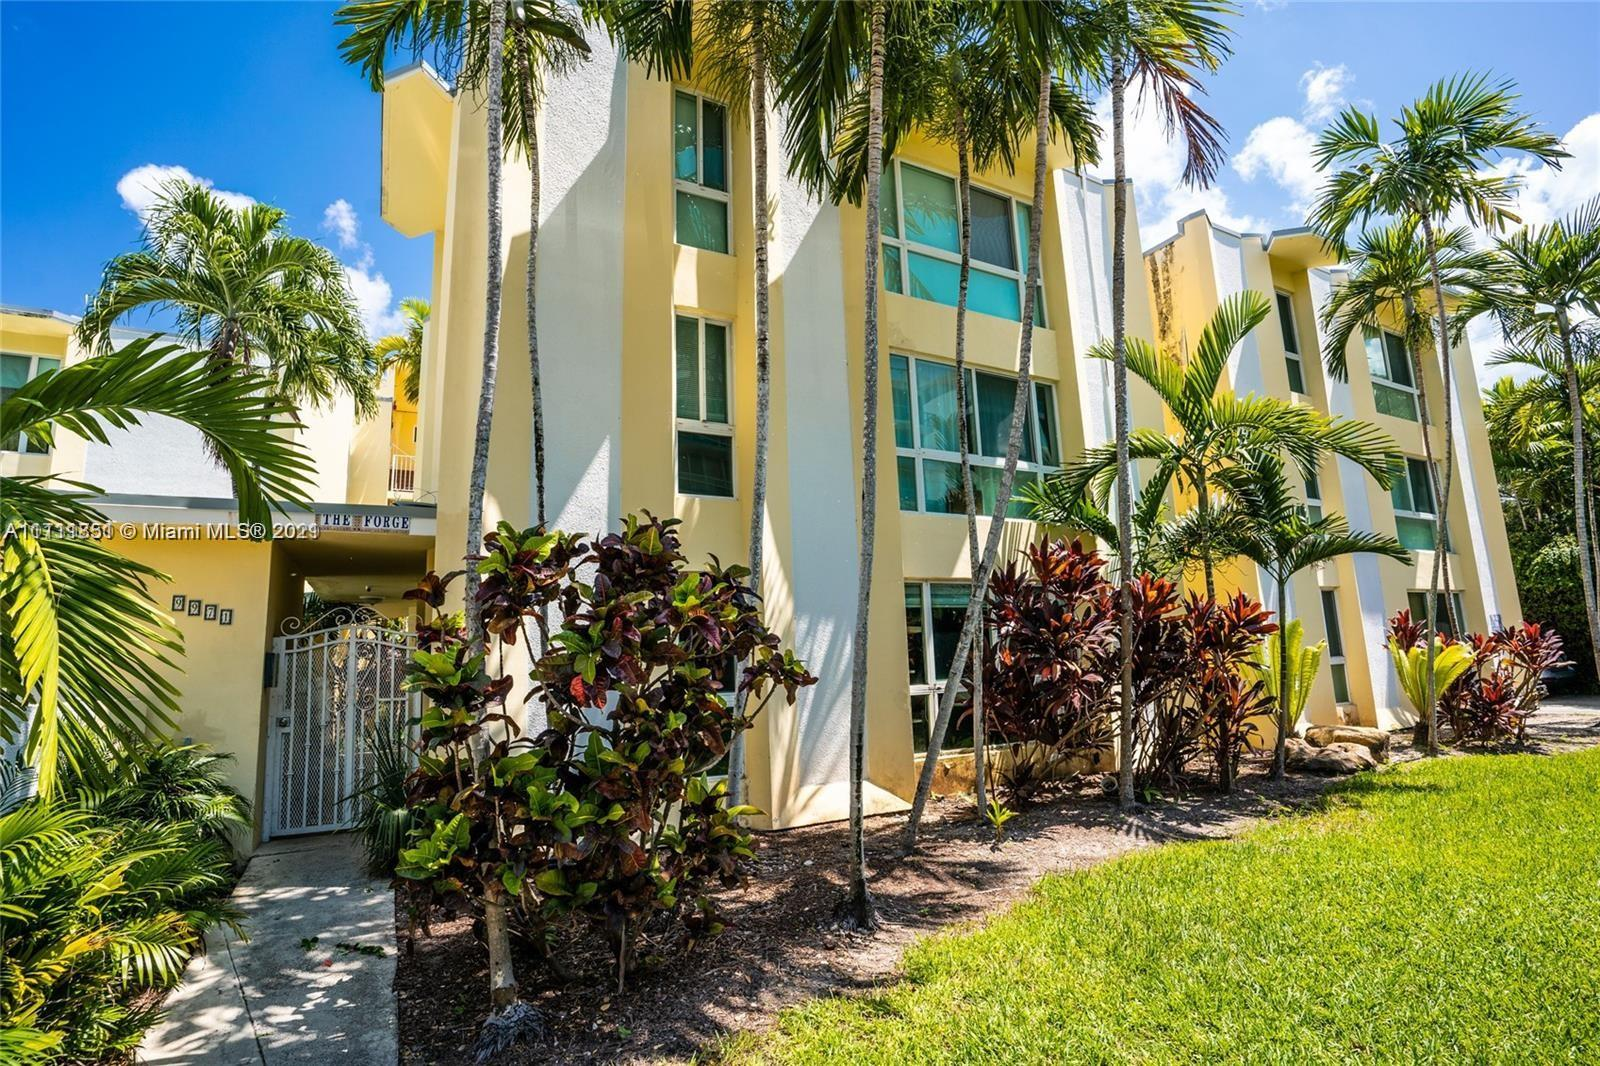 9971 W Bay Harbor Dr #105 For Sale A11111851, FL